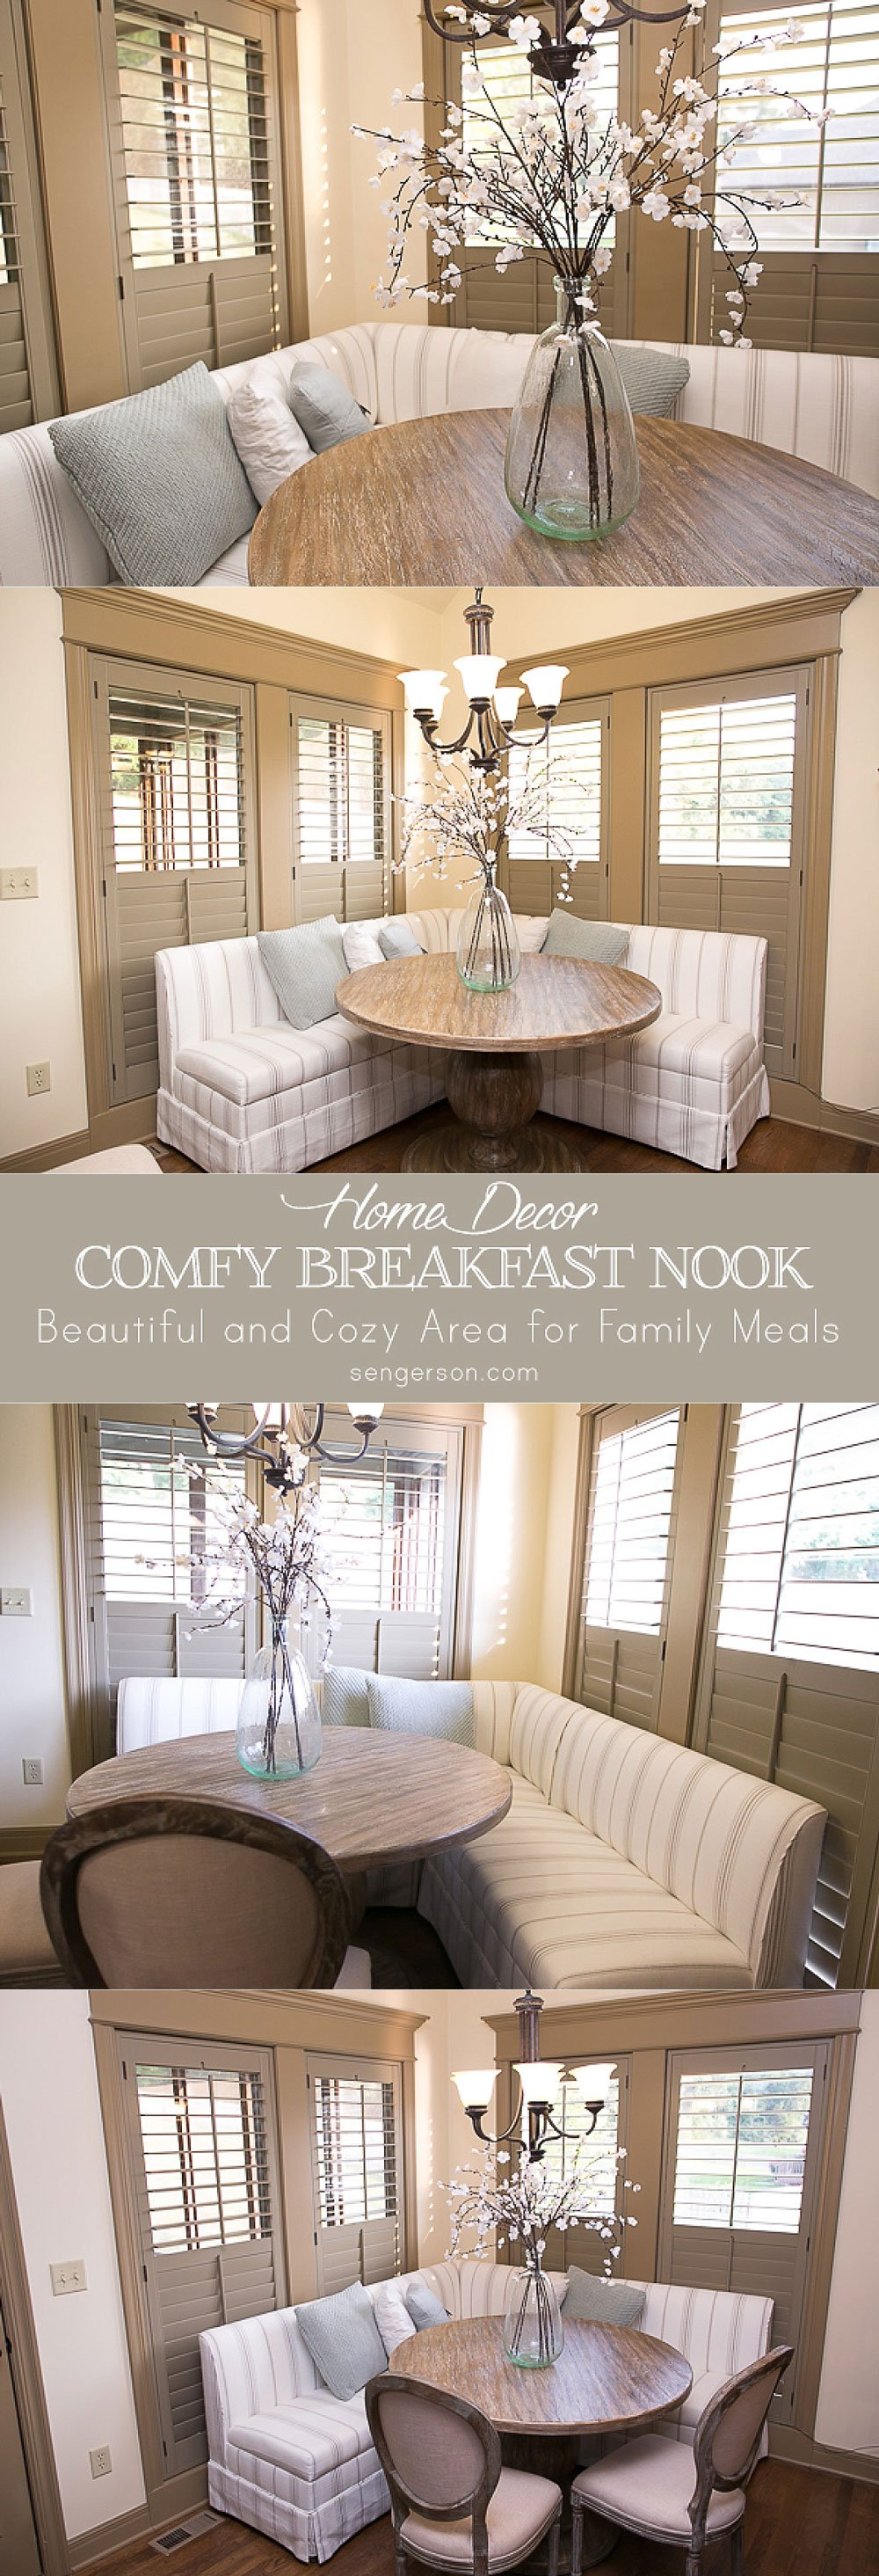 Beautiful And Gorgeous Breakfast And Dining Nook Ideas To Make Family Meals  Fun And Cozy.